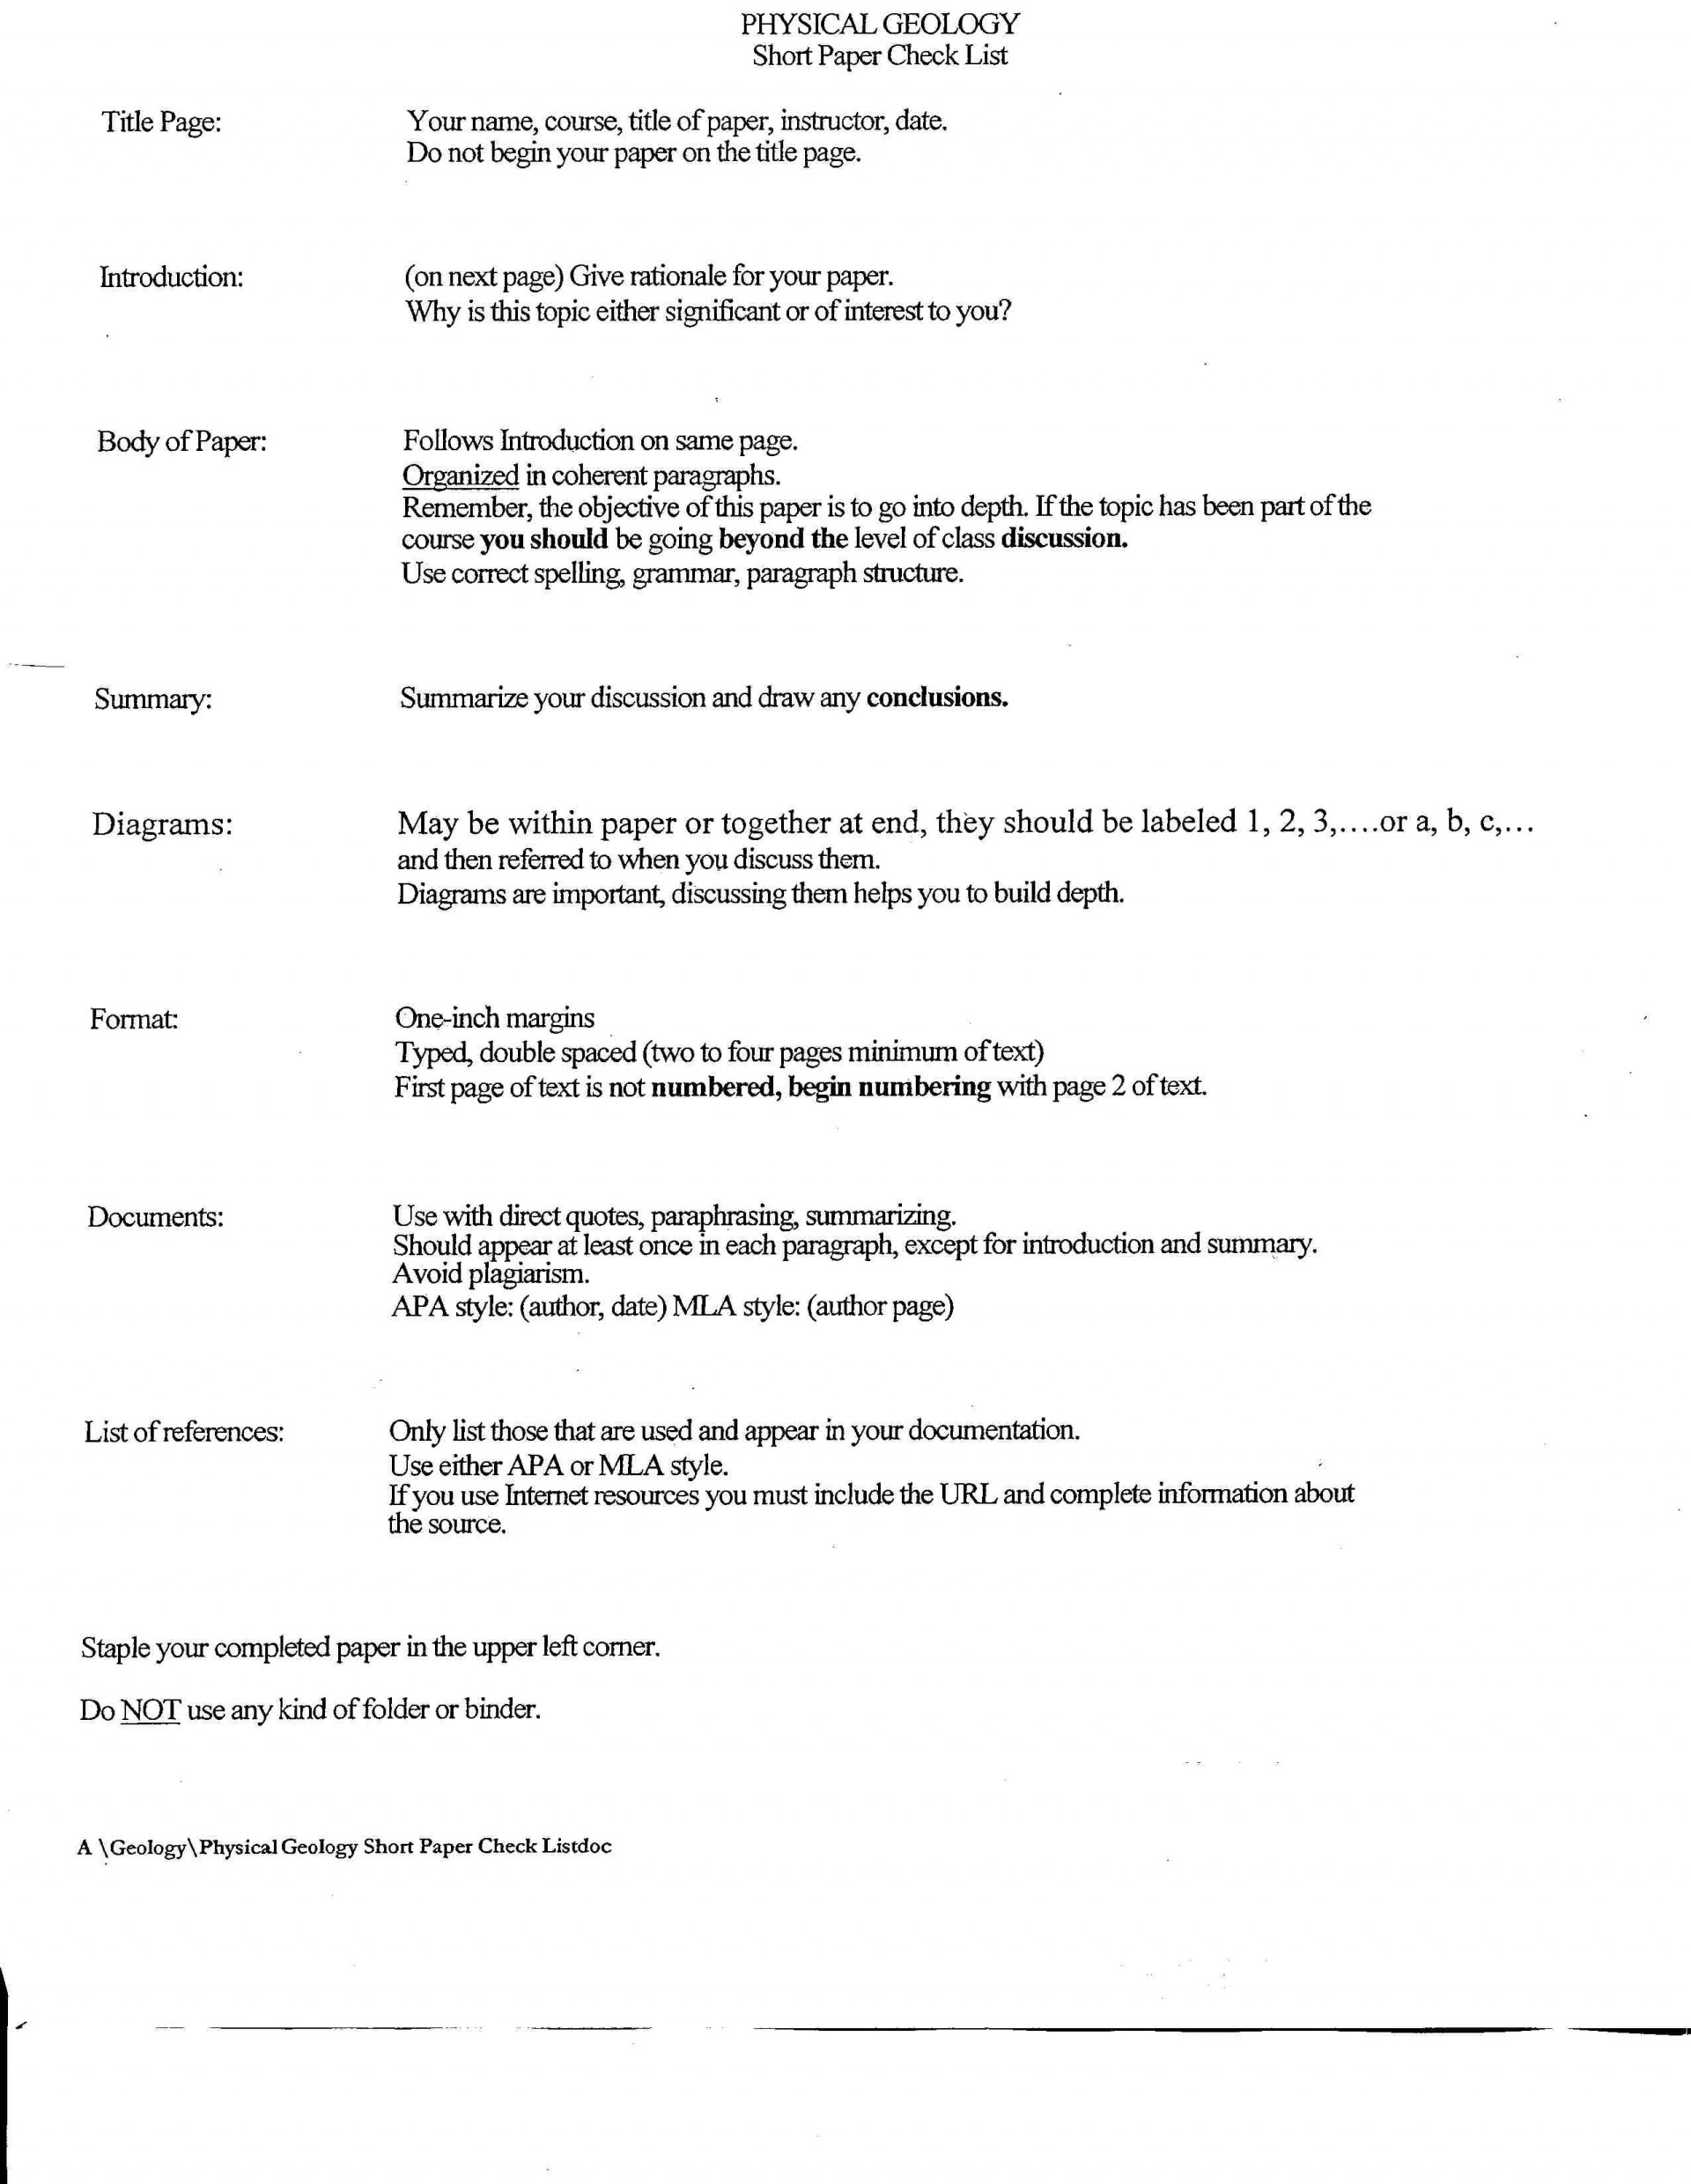 021 Research Paper Example Of Introduction Short Checklist Wonderful A About Bullying Psychology Scientific 1920